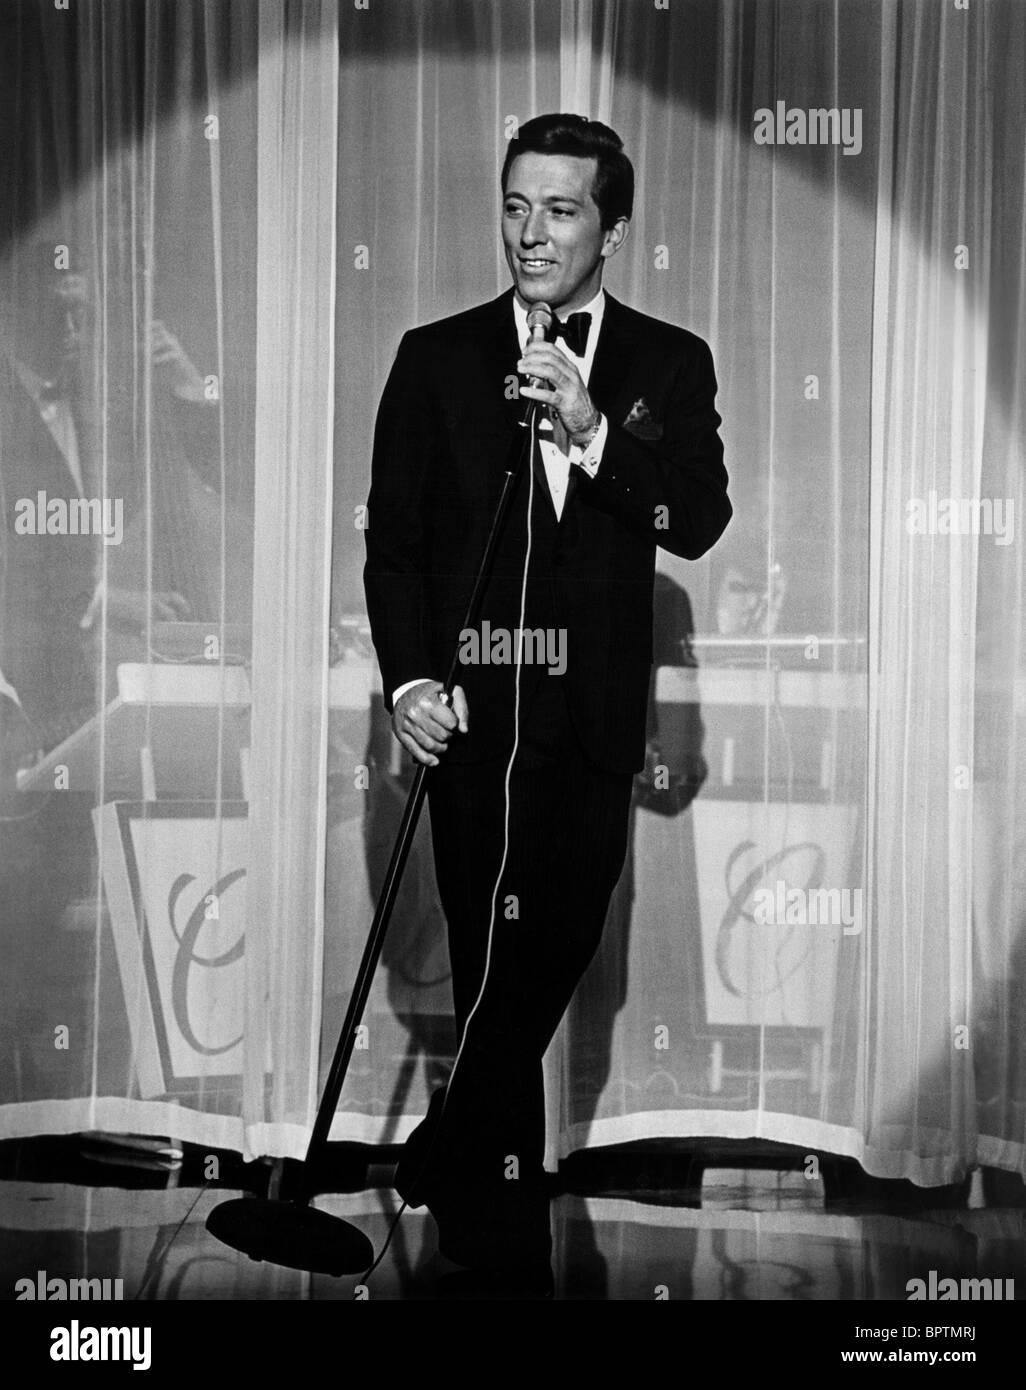 ANDY WILLIAMS SINGER (1964) - Stock Image